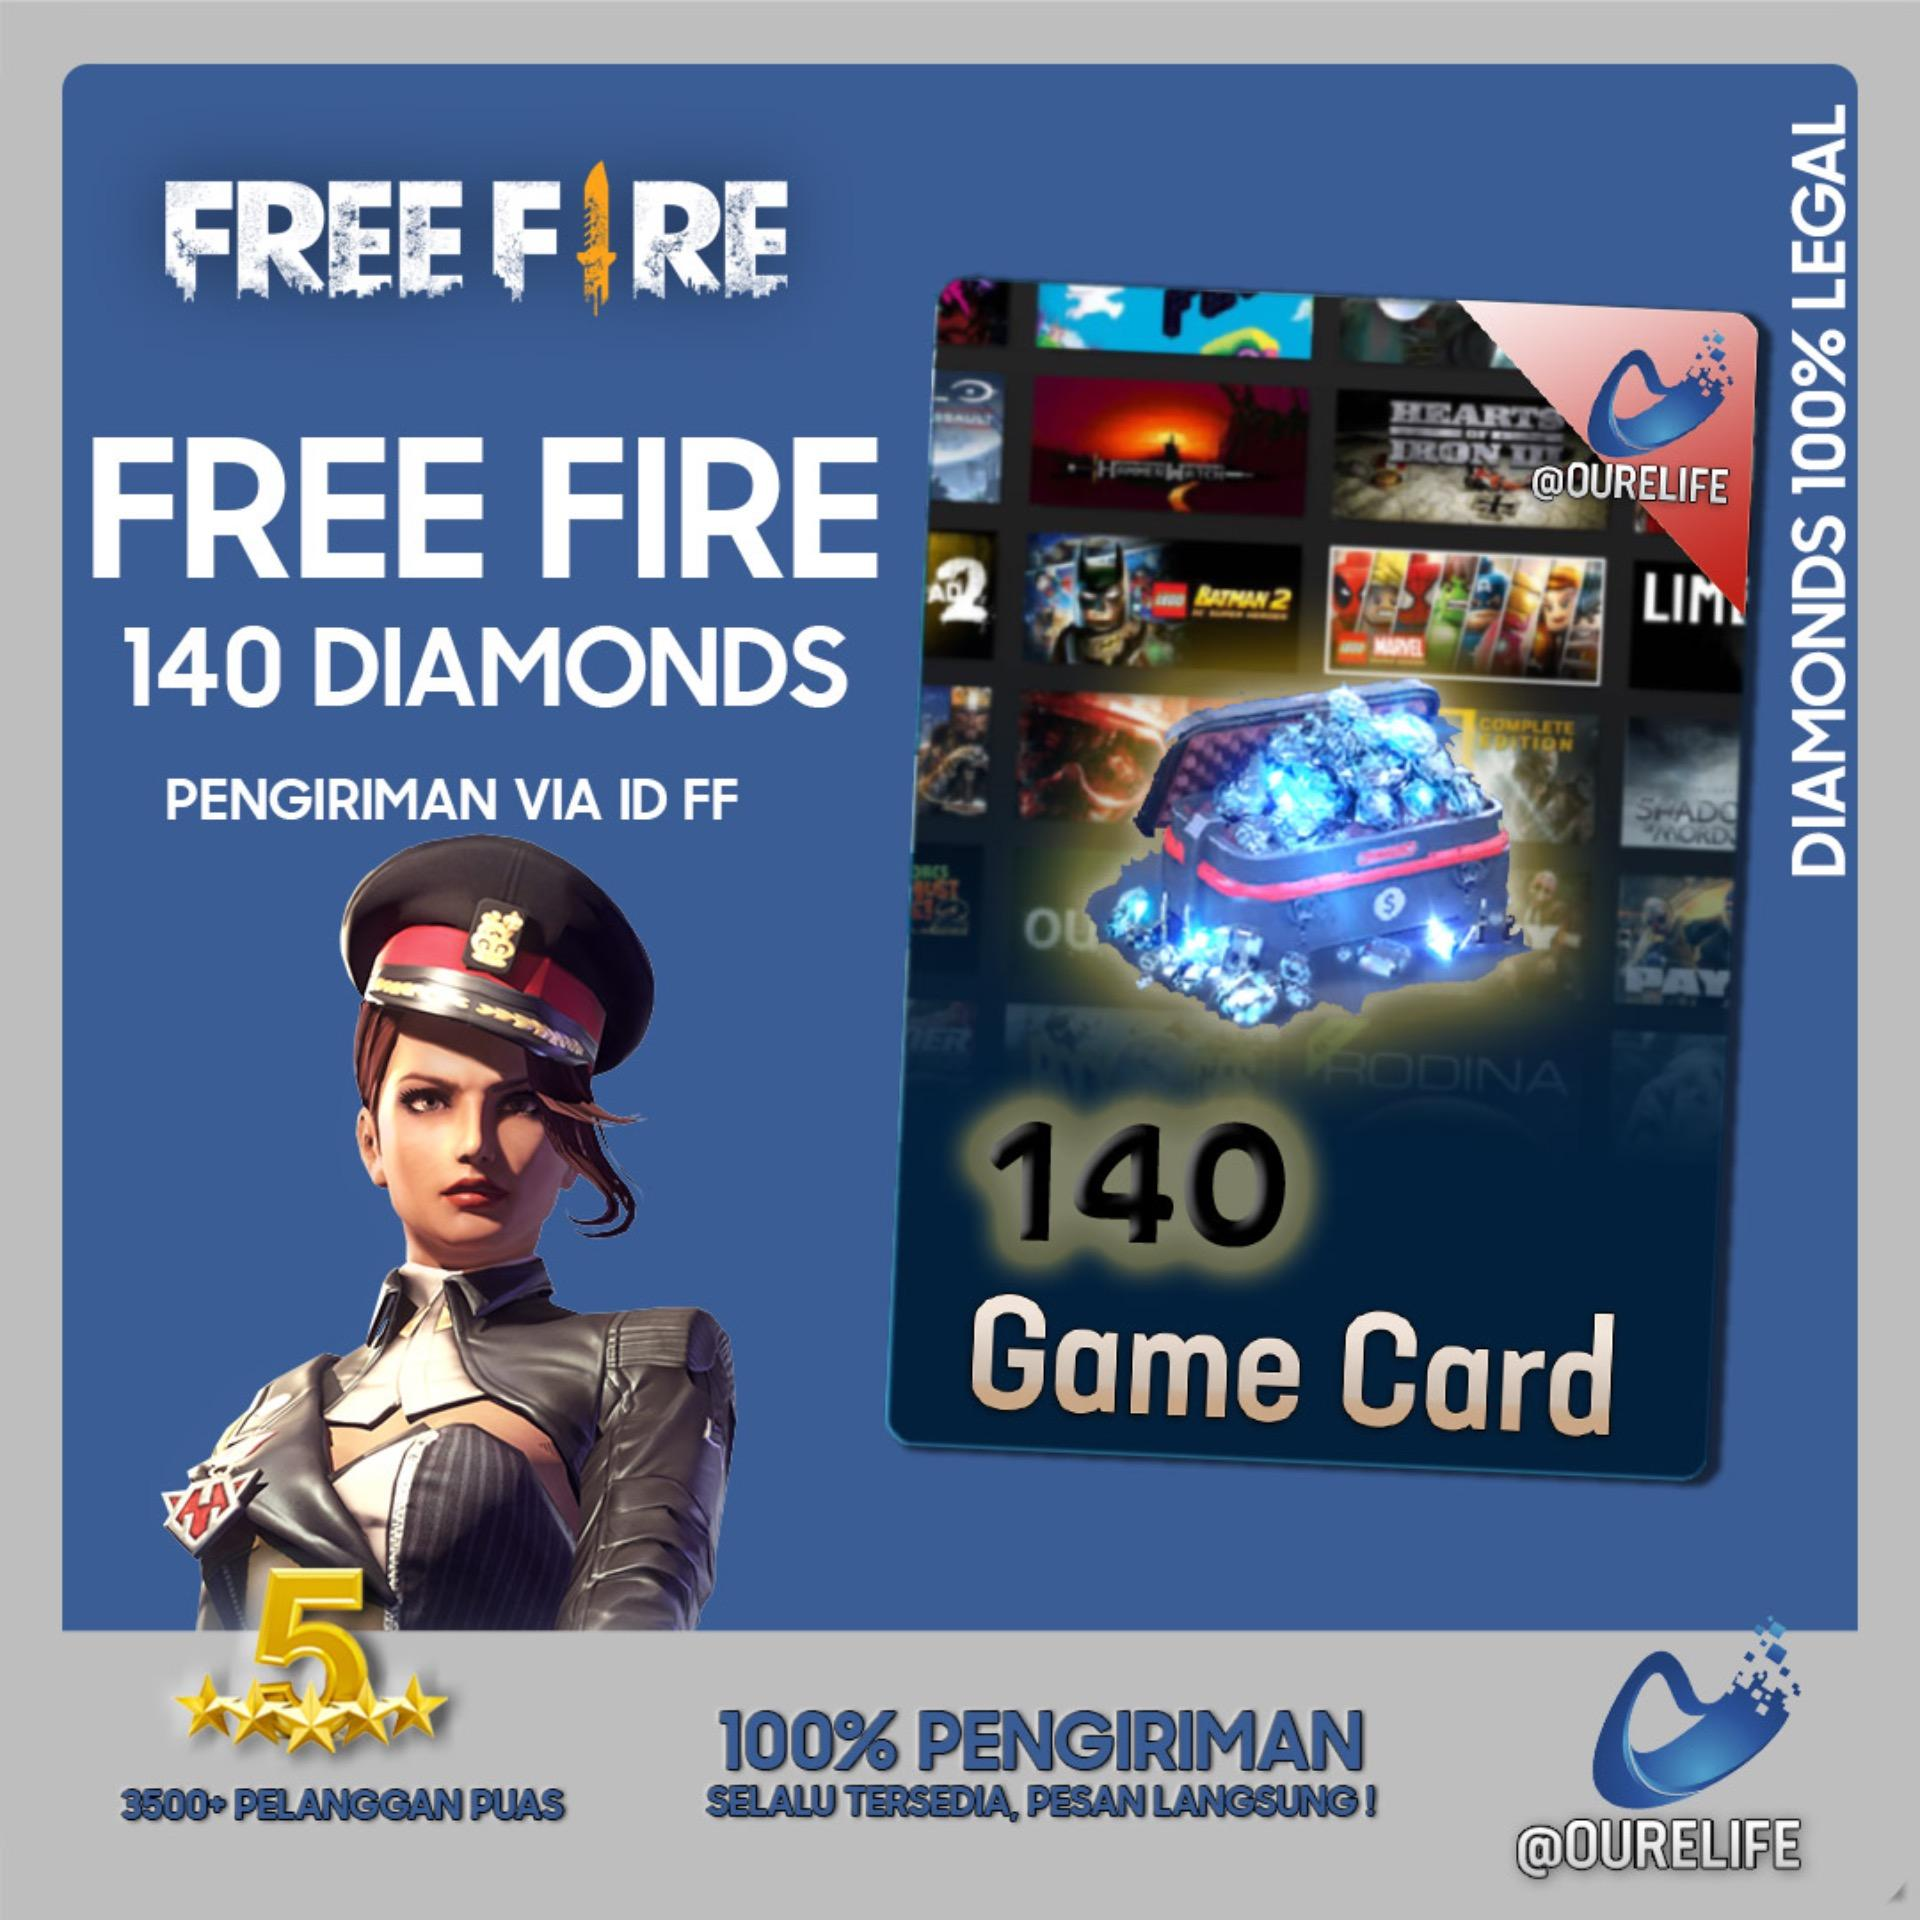 Top Up 140 Diamond Free Fire By Ourelife.co.id.